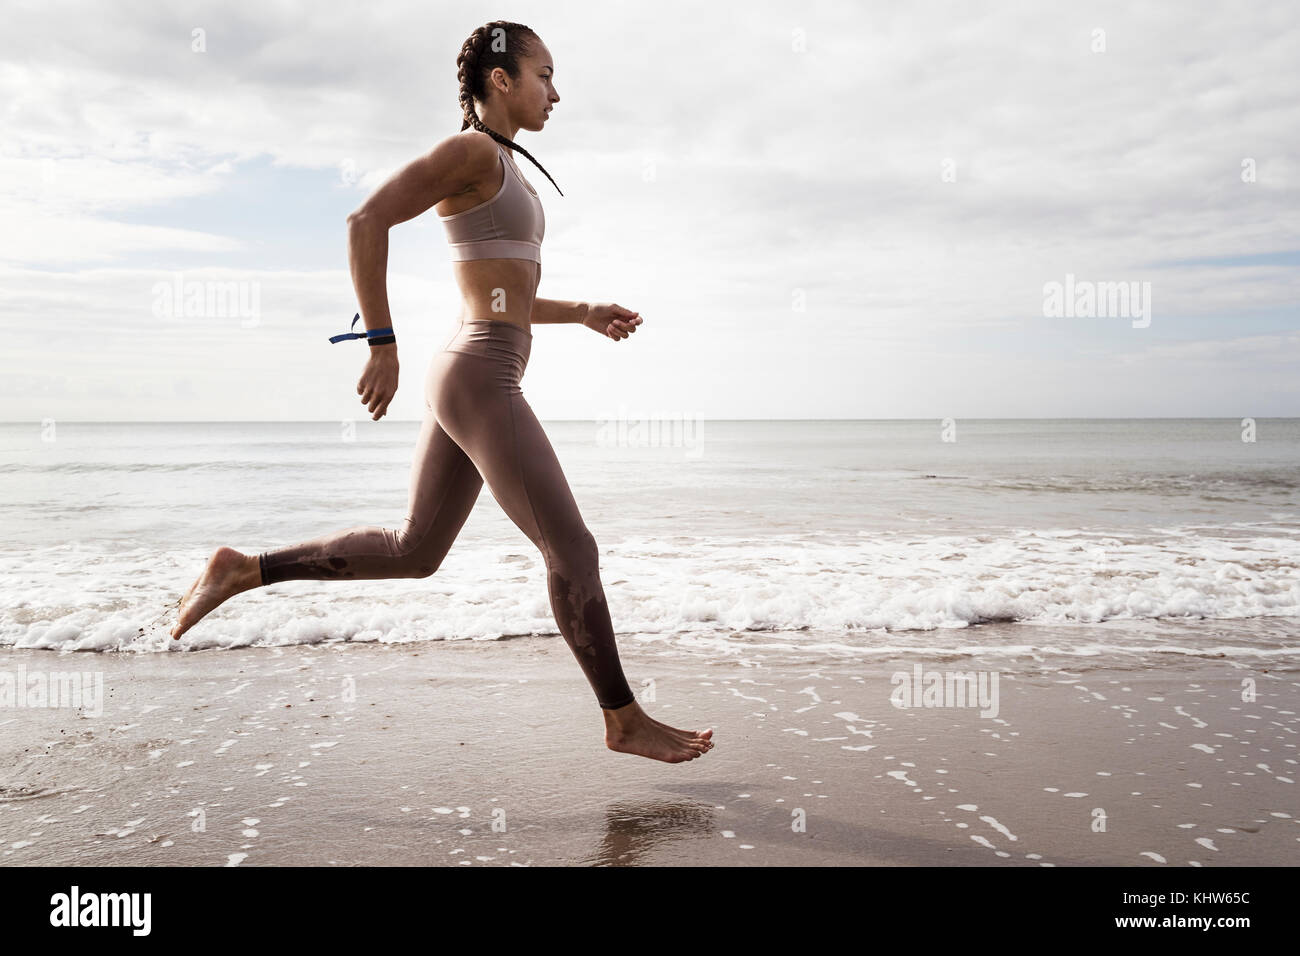 Side view of young female runner running barefoot along water's edge at beach - Stock Image